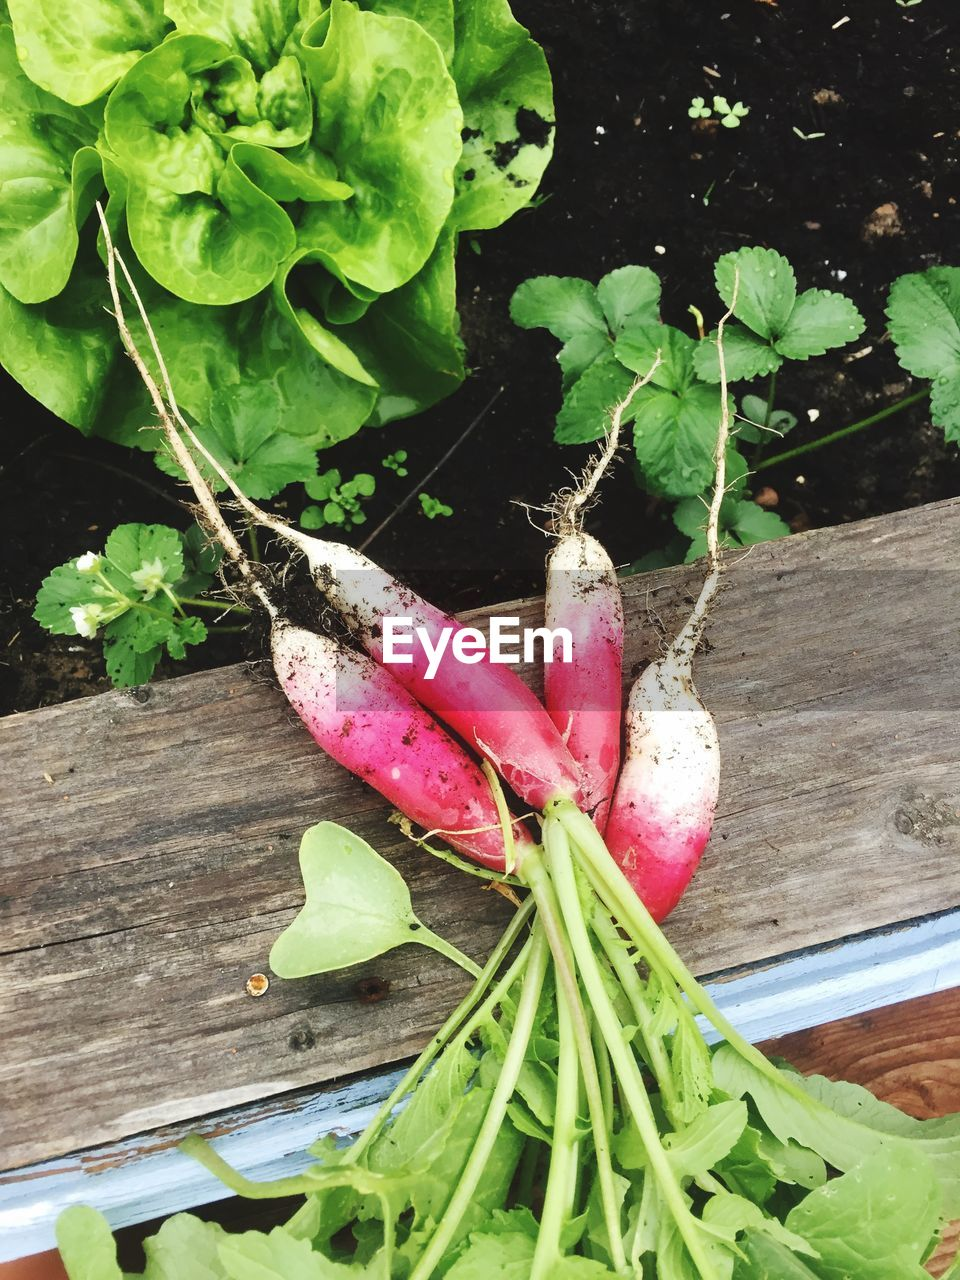 plant part, leaf, freshness, green color, plant, food and drink, growth, healthy eating, vegetable, wellbeing, close-up, no people, food, high angle view, nature, root vegetable, table, wood - material, day, outdoors, common beet